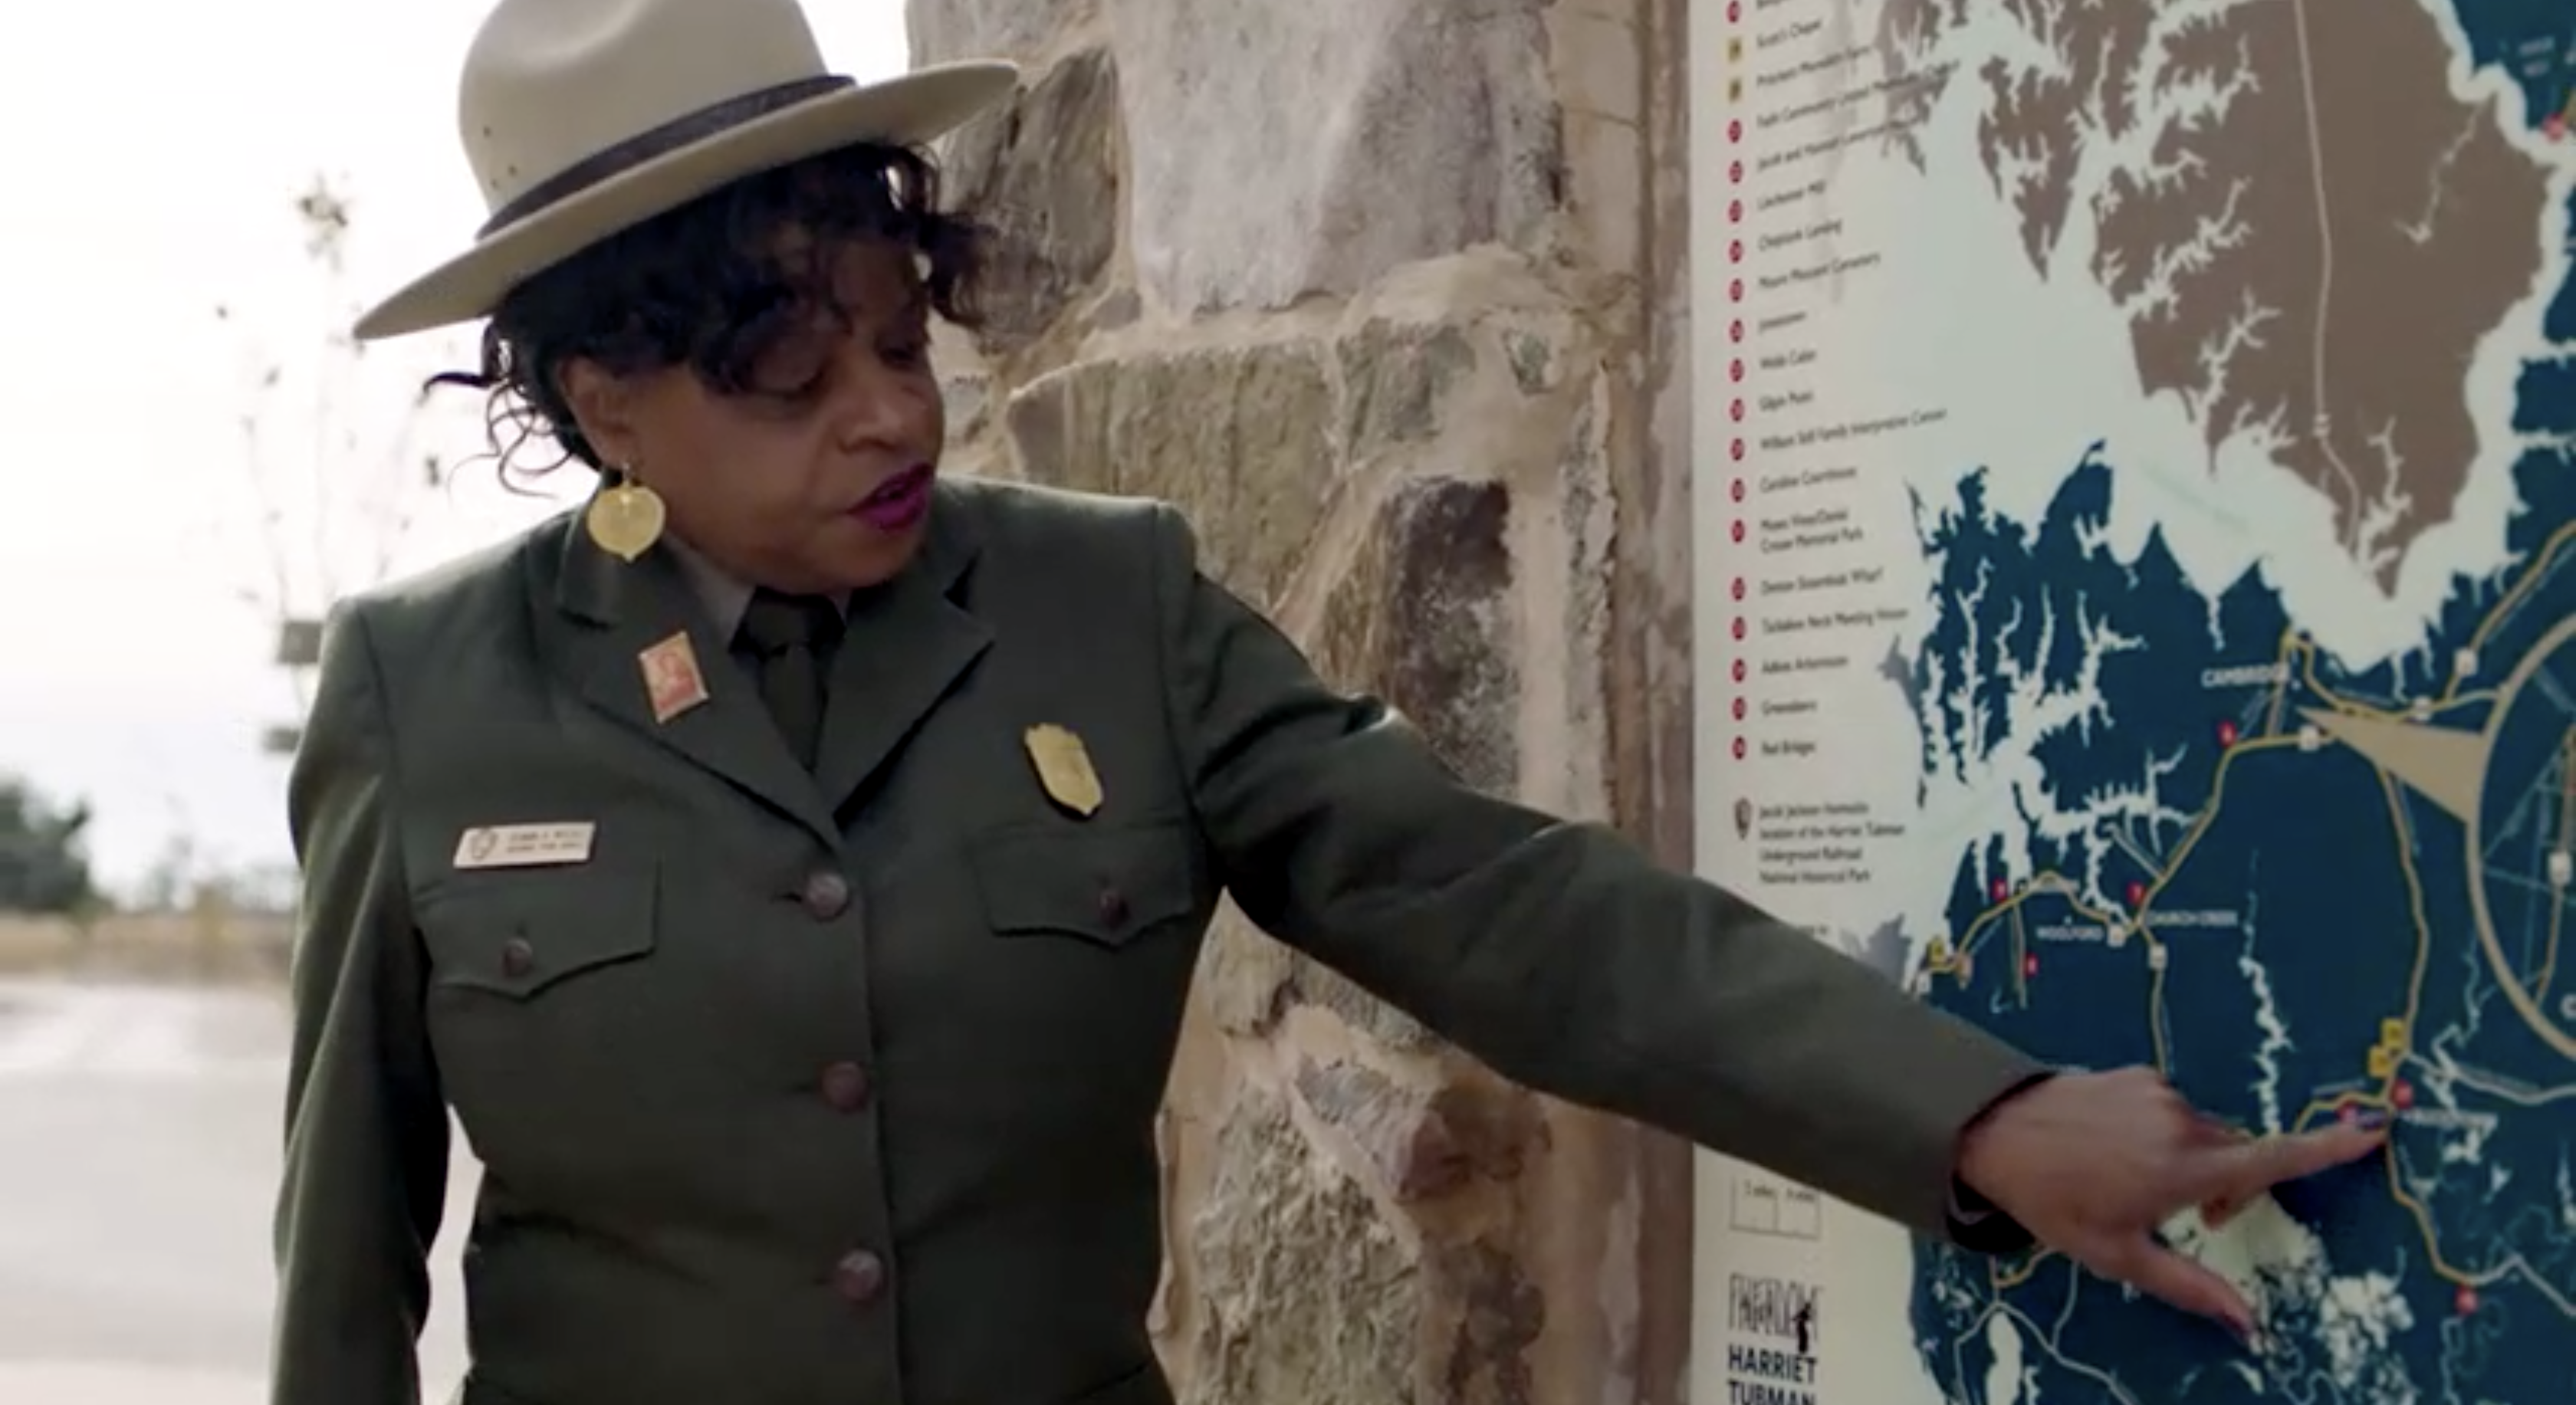 A National Park Service Employee points to a spot on a map